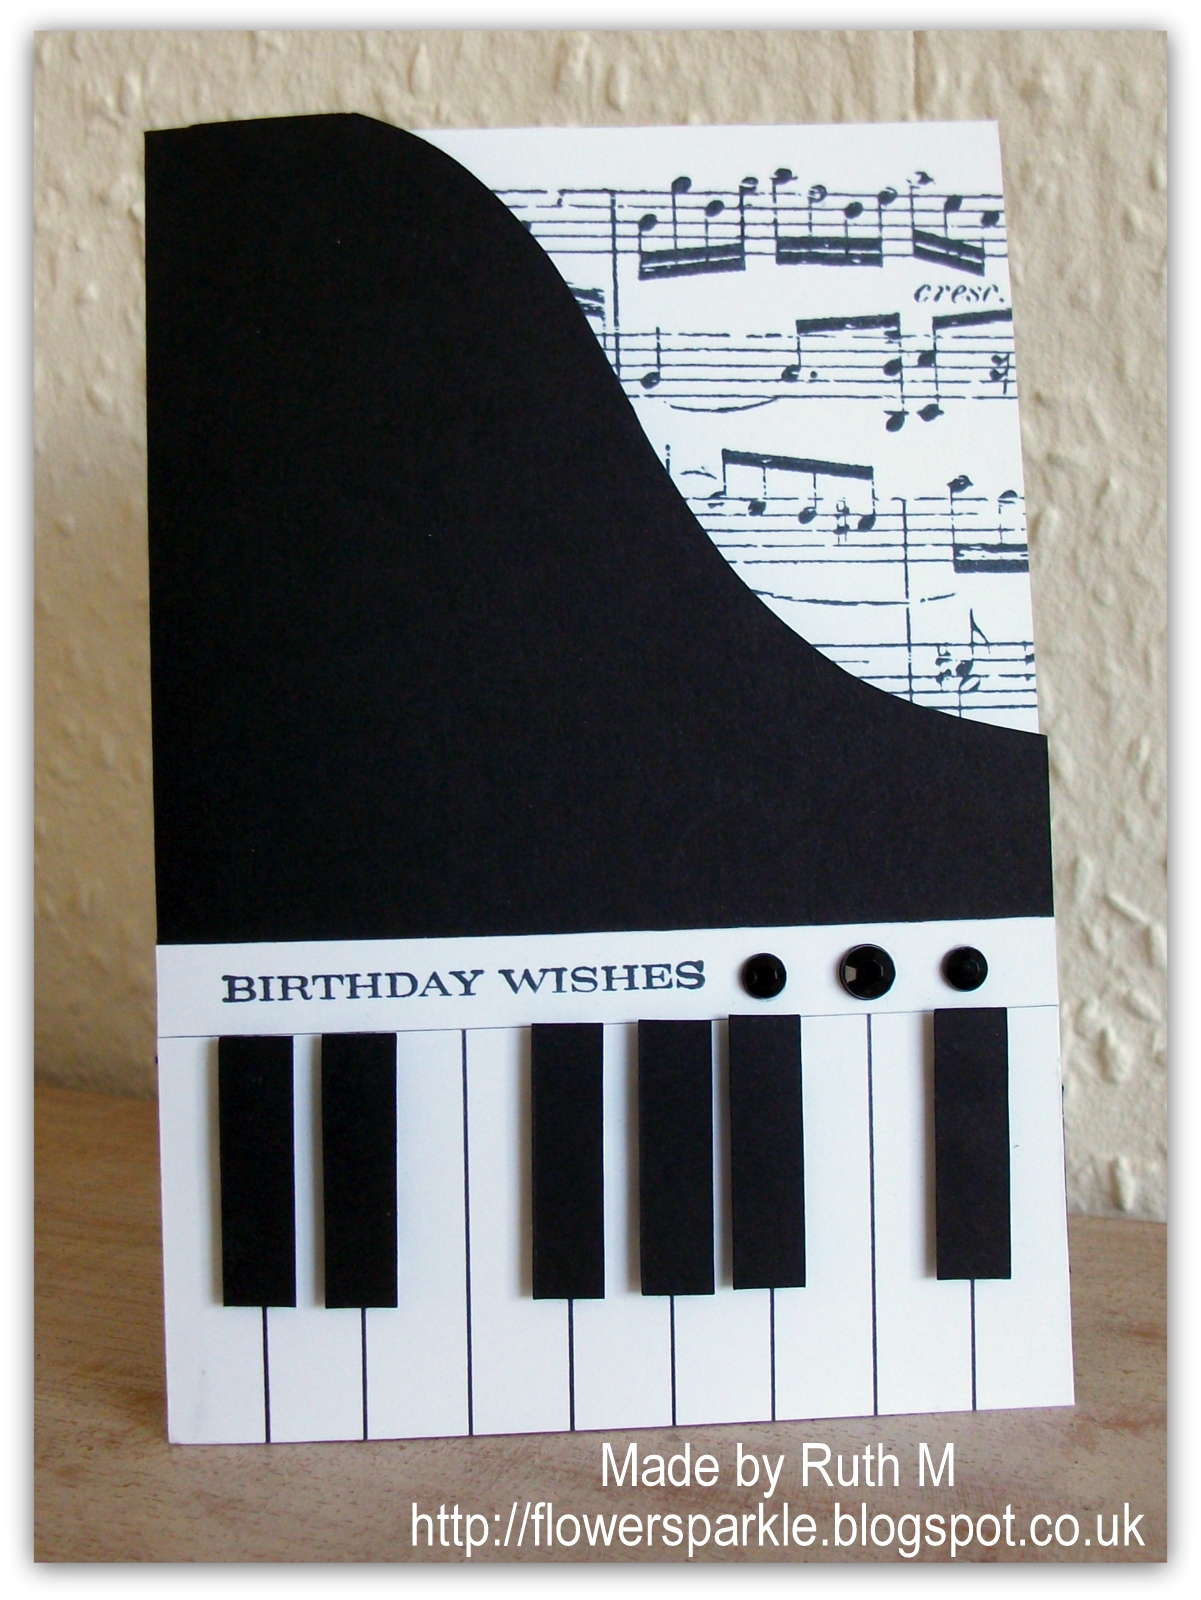 Flower sparkle piano birthday wishes card for alan flower sparkle bookmarktalkfo Gallery